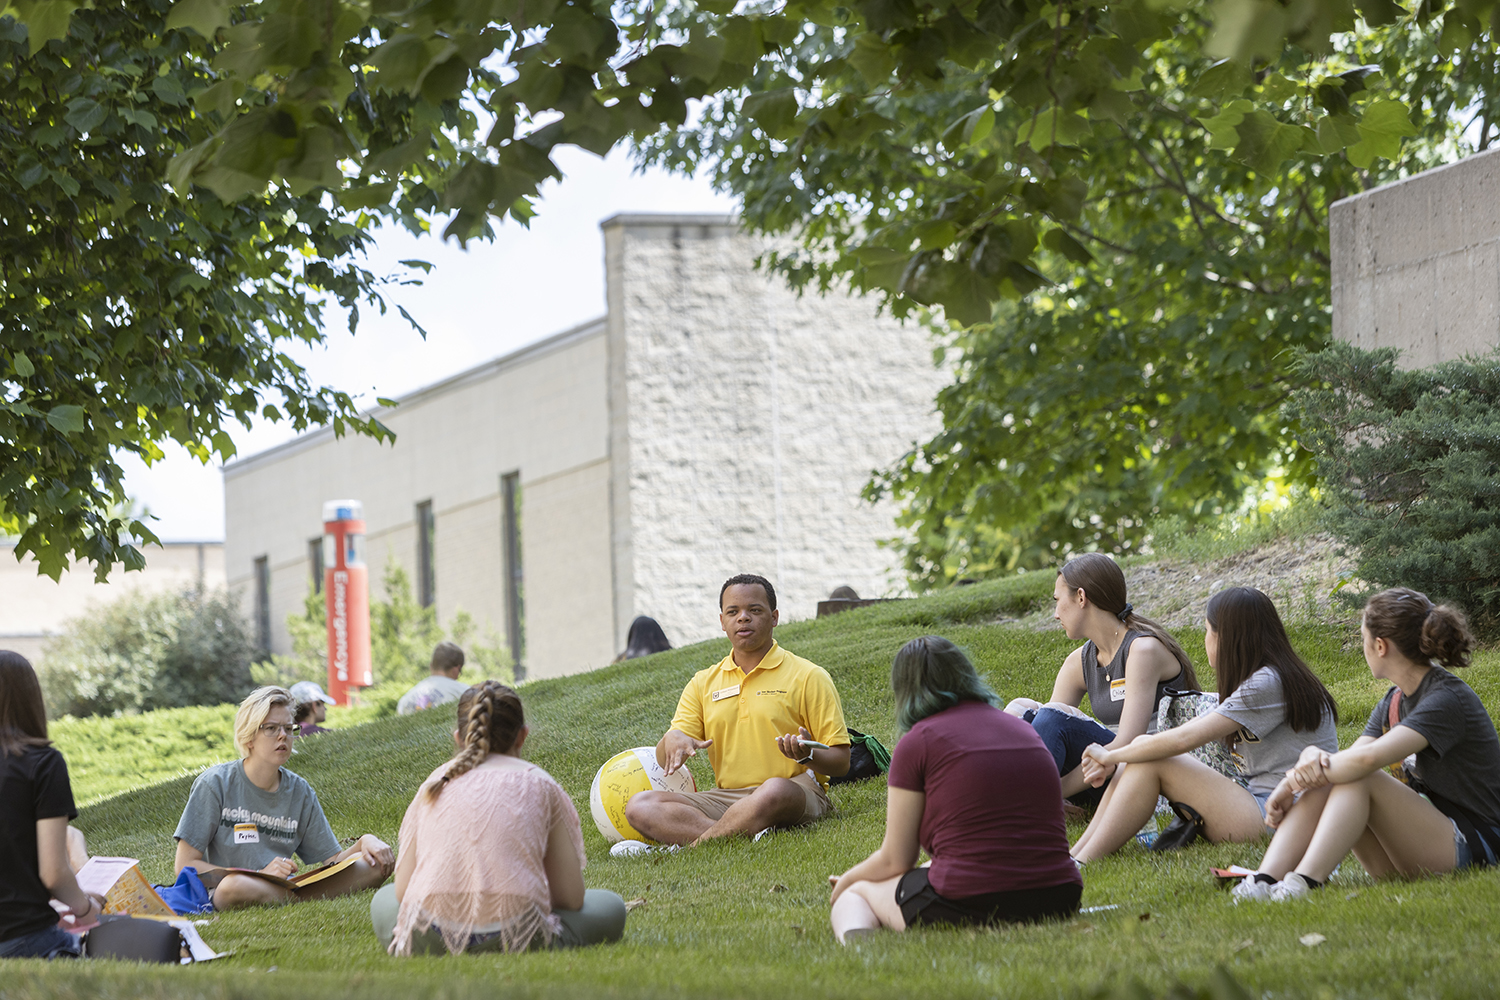 a male student sits at the center of a circle of students. they're sitting outside under trees on a sunny day